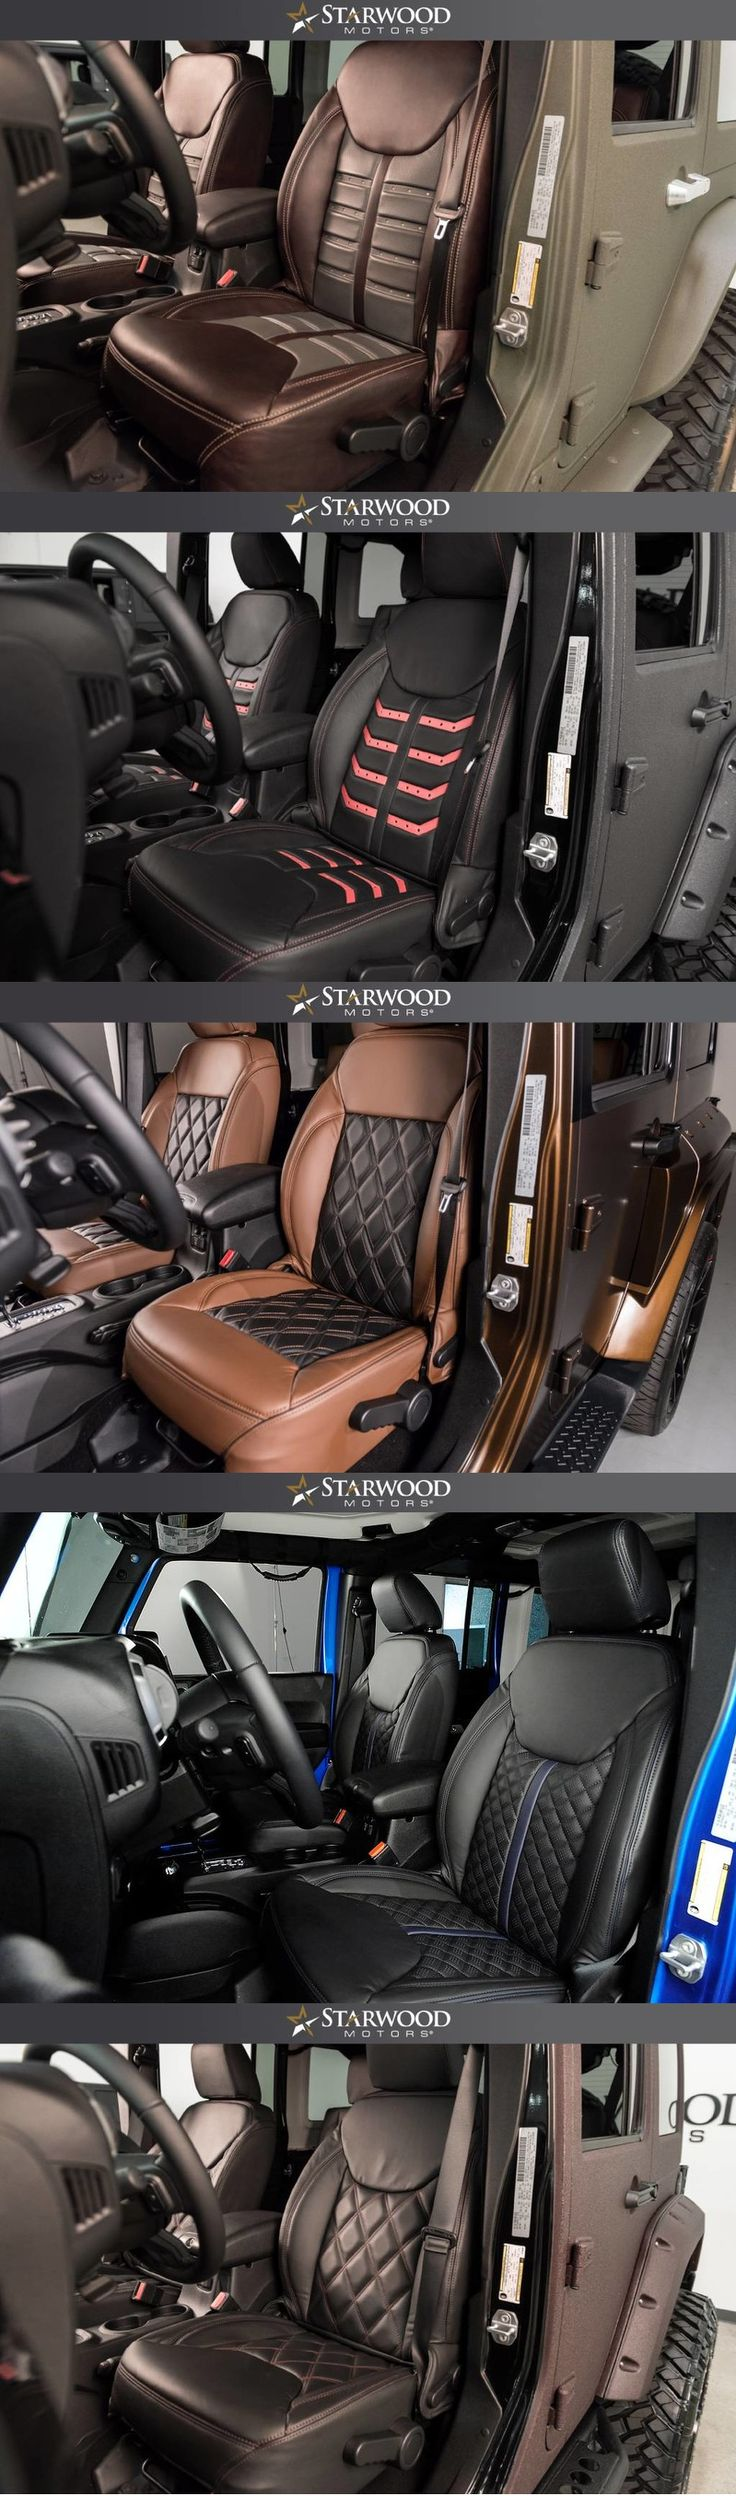 Starwood Motors leather interiors